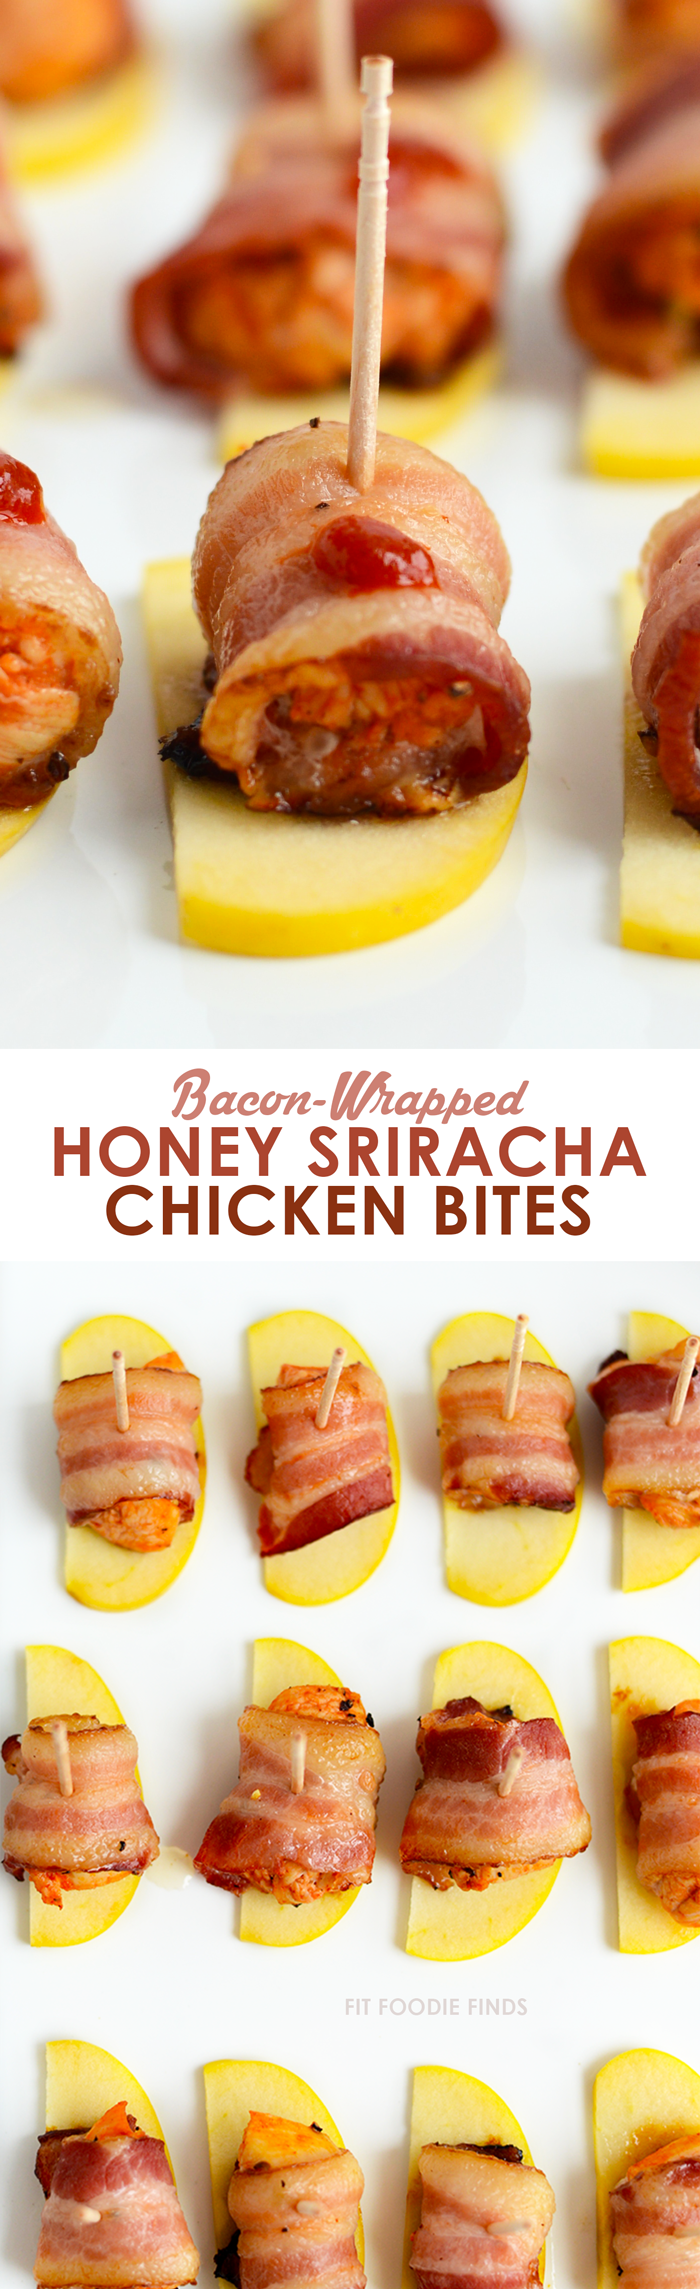 Bacon-Wrapped Honey Sriracha Chicken Bites